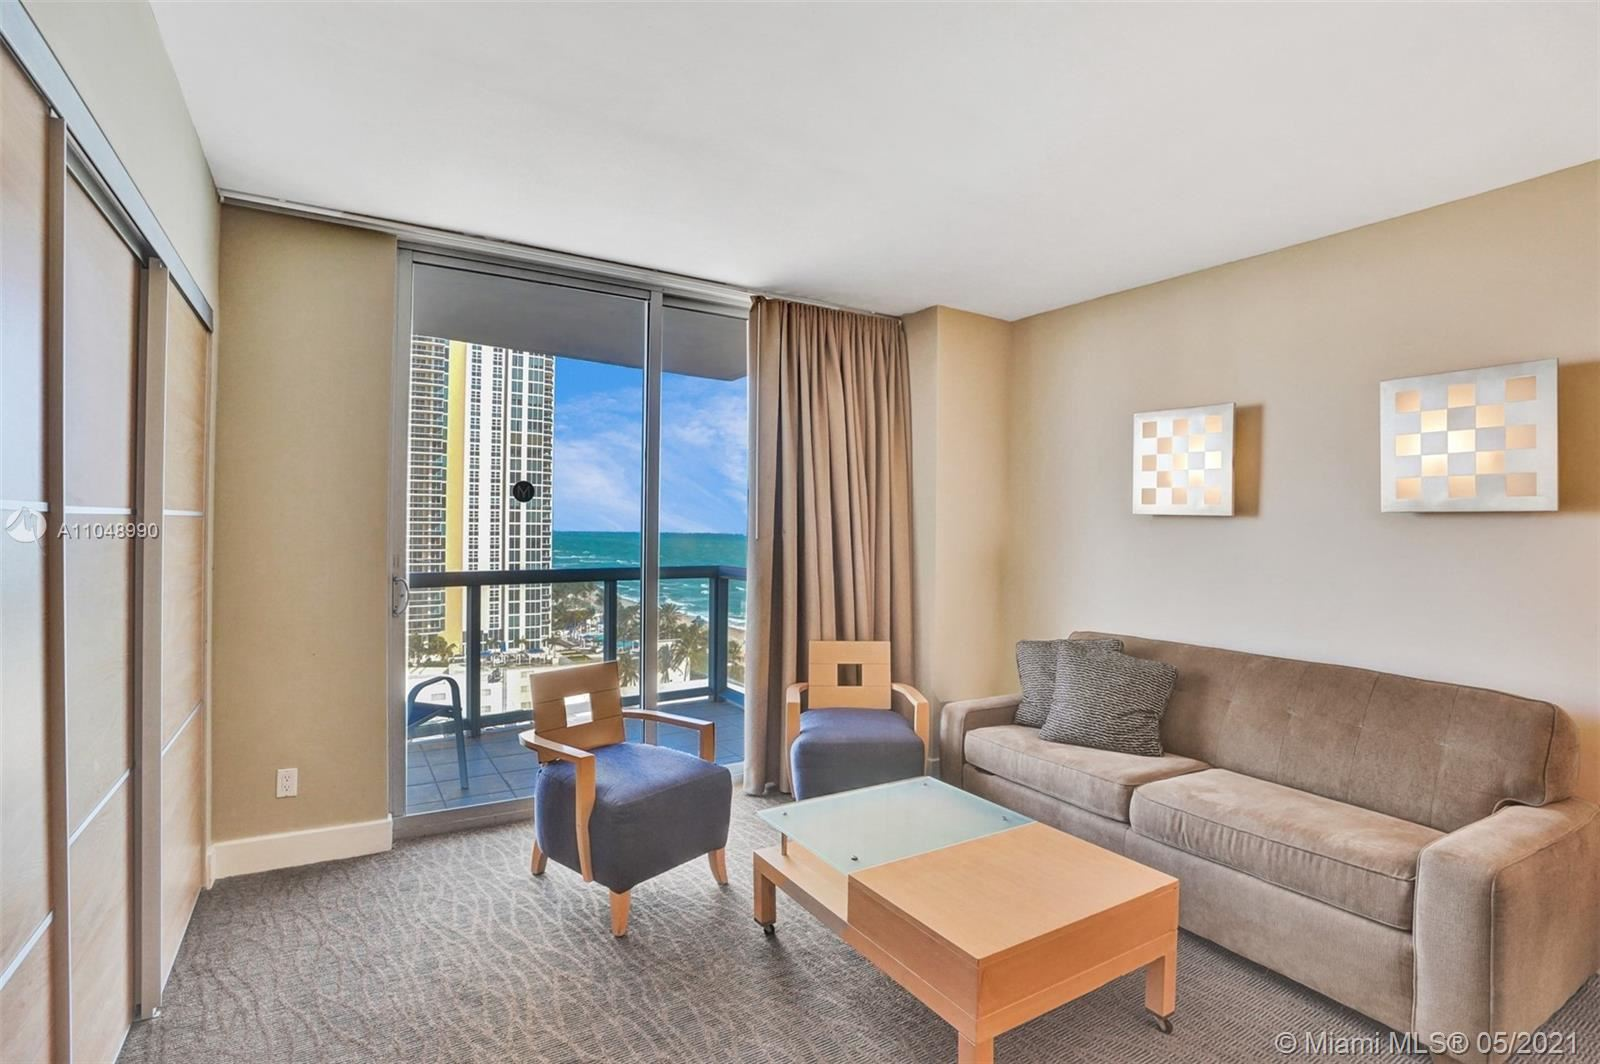 18683 Collins Ave #1406, Sunny Isles, FL 33160 - #: A11048990